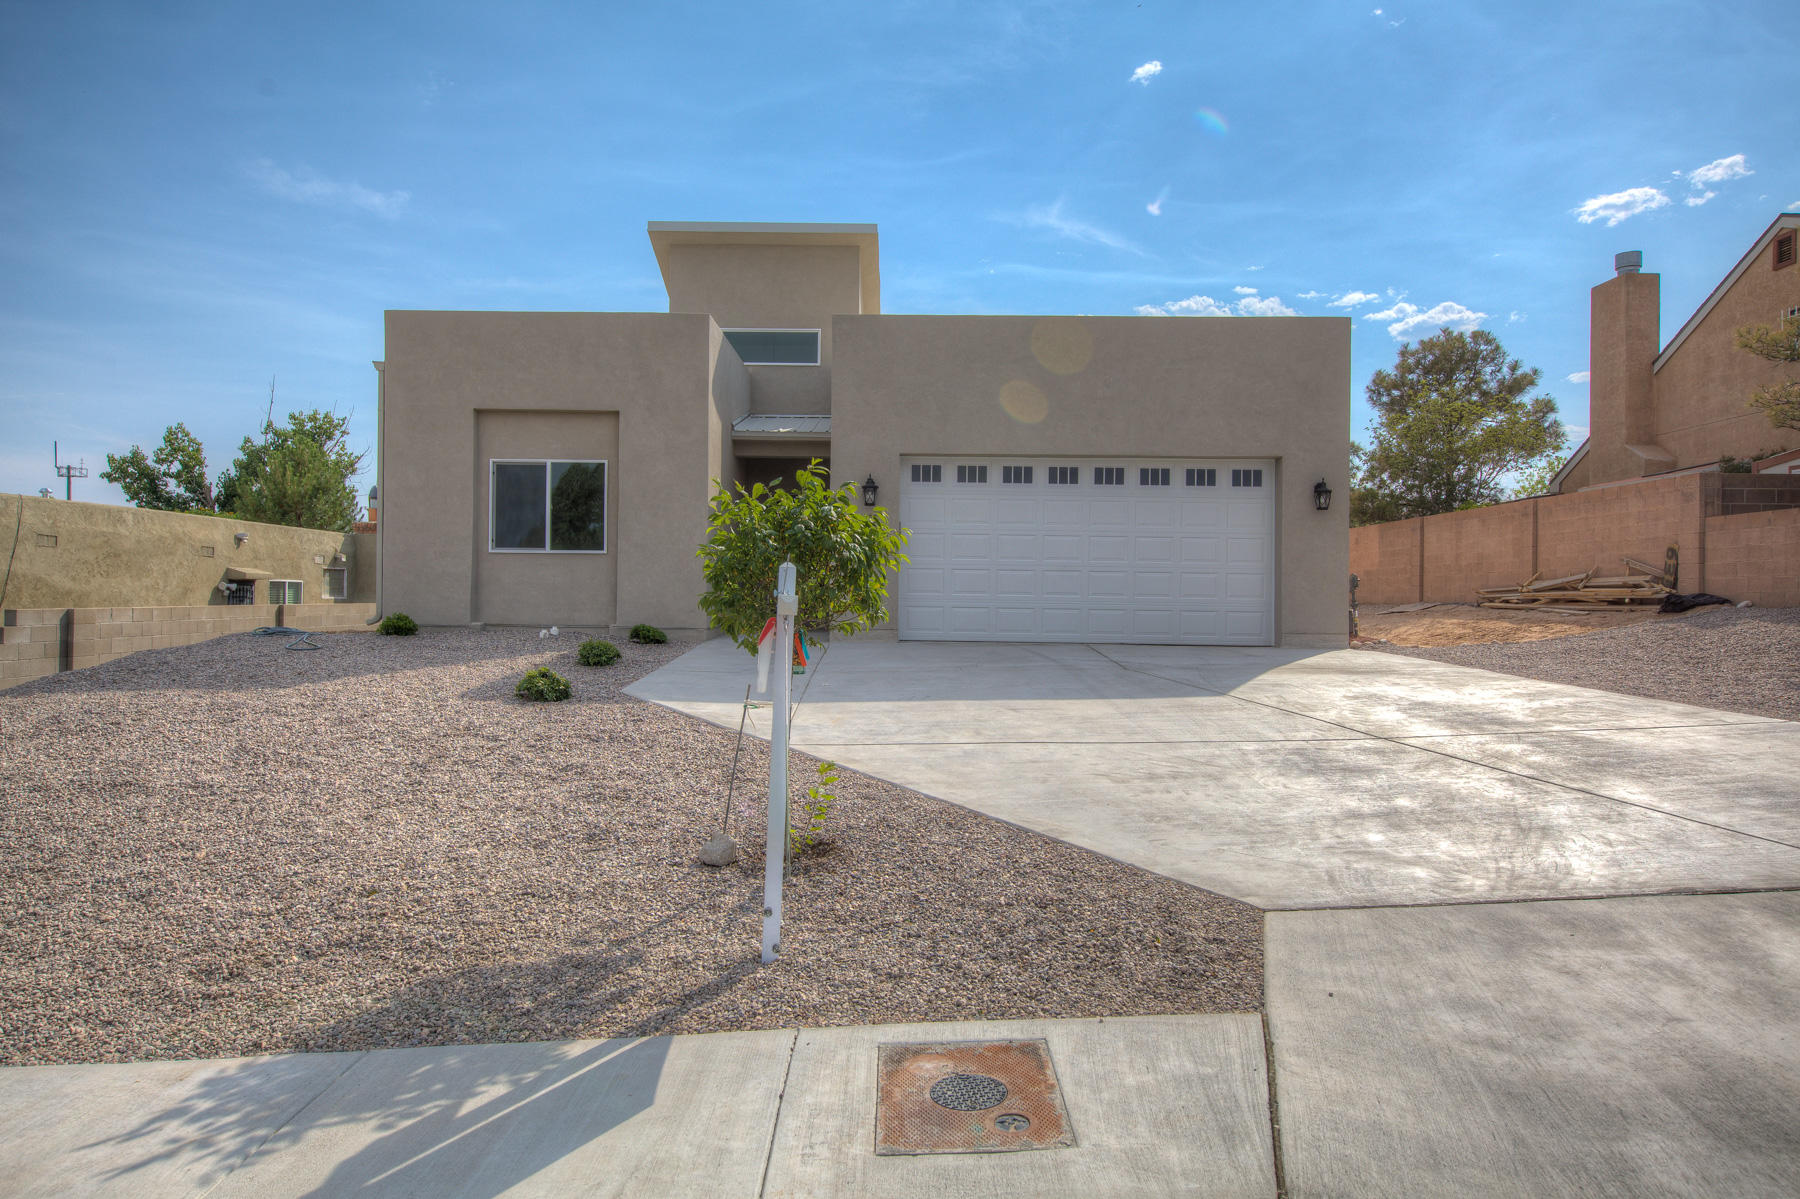 Beautiful New Construction! Three bedroom two full bath! Master Suite complete with large walk in closet, water closet, seperate tub and shower. Back yard access, walled property and no HOA! Come see your new home today